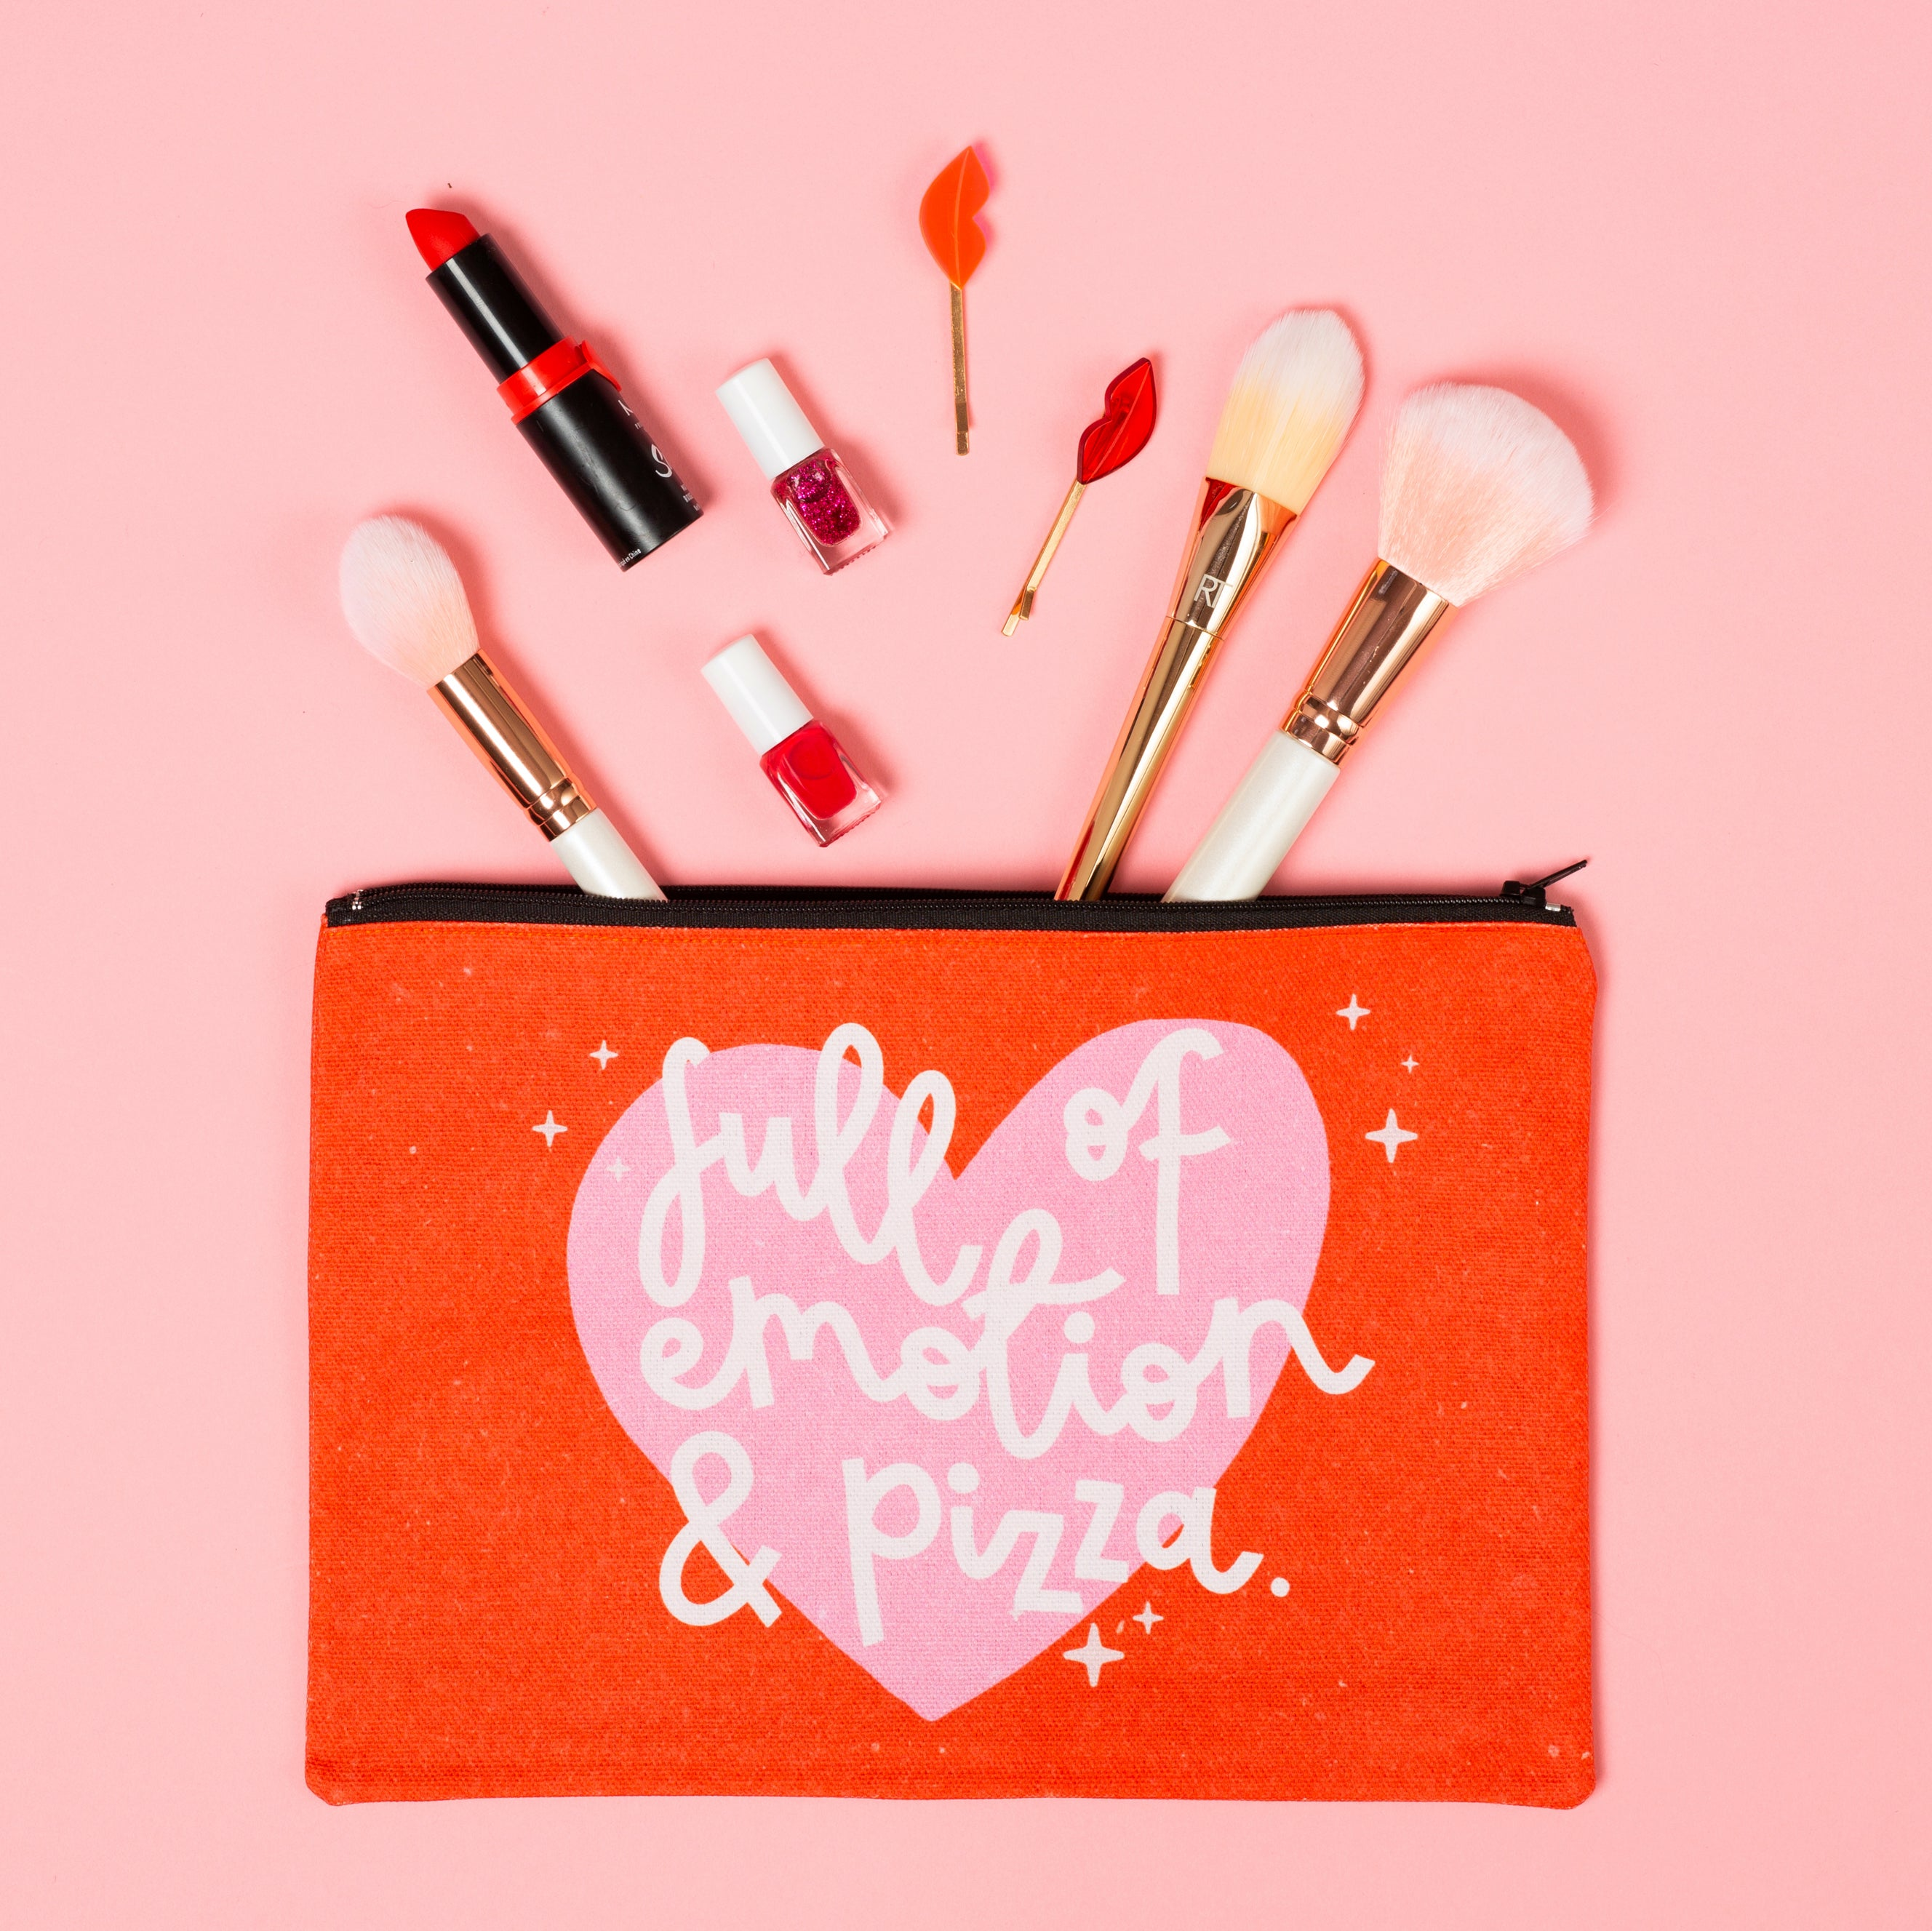 Makeup Bag - Full of Emotion & Pizza - Oh, Laura